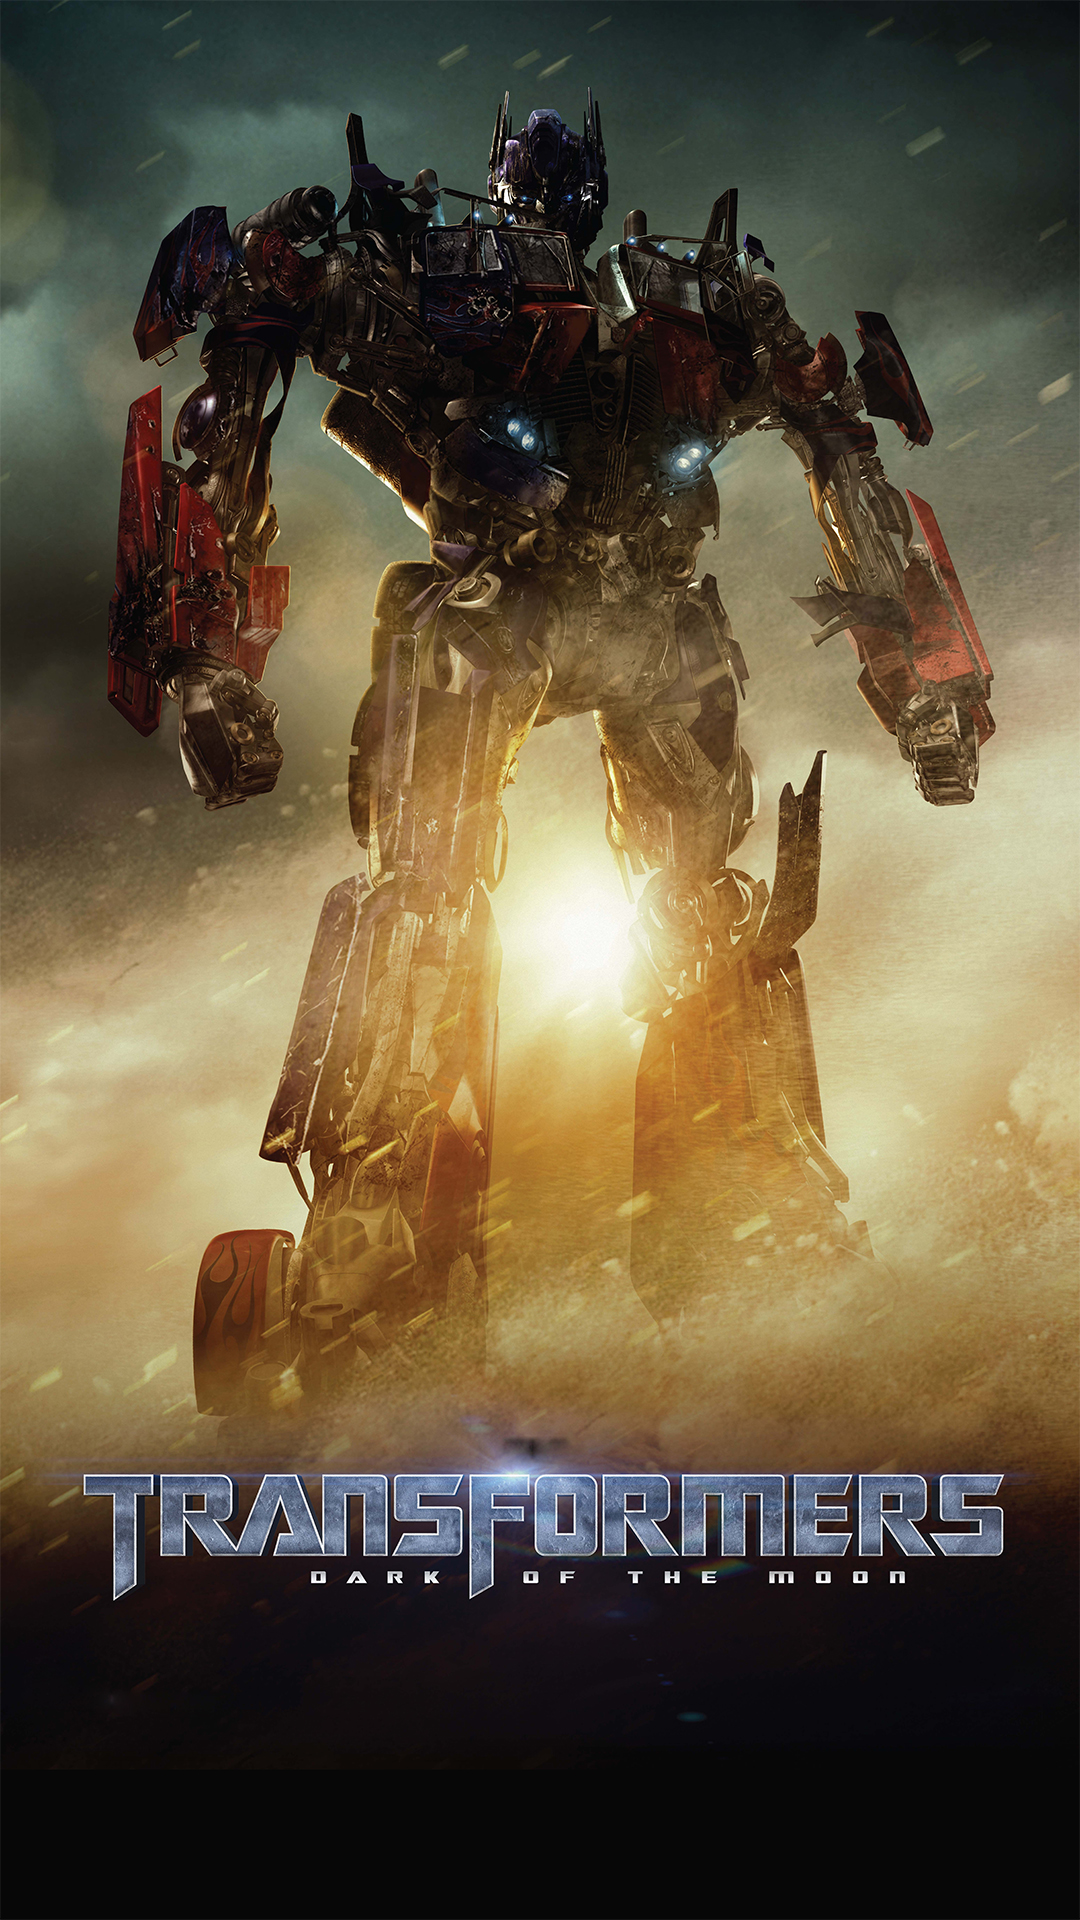 Htc One M8 Wallpaper Hd Transformers Optimus Prime Best Htc One Wallpapers Free